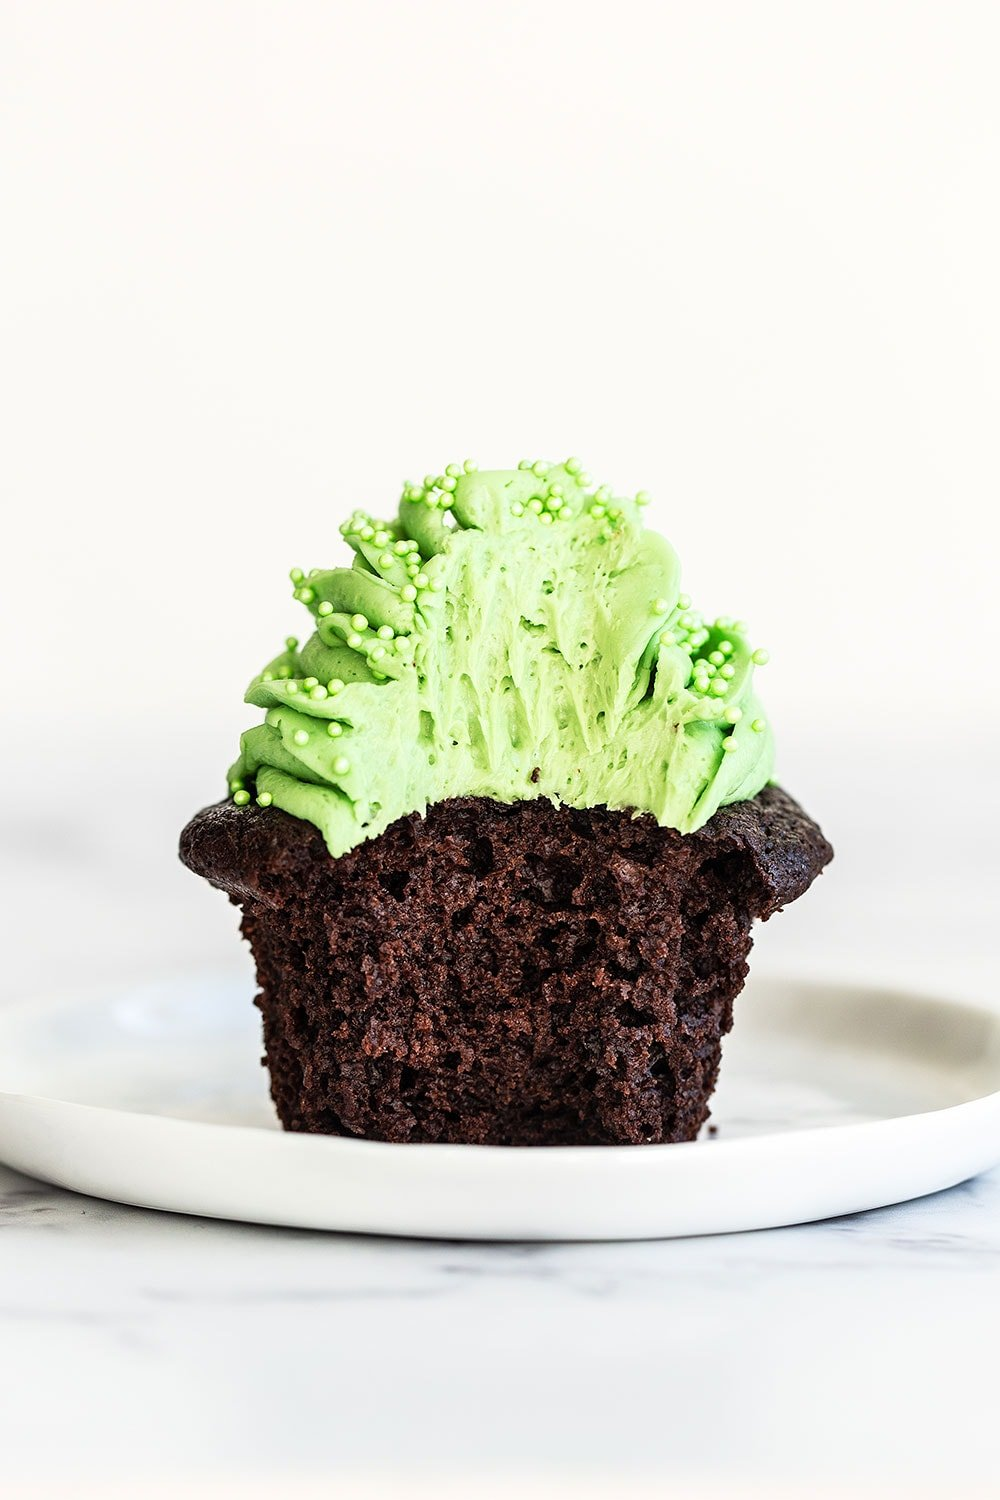 Chocolate mint cupcake on a plate with a bite taken out